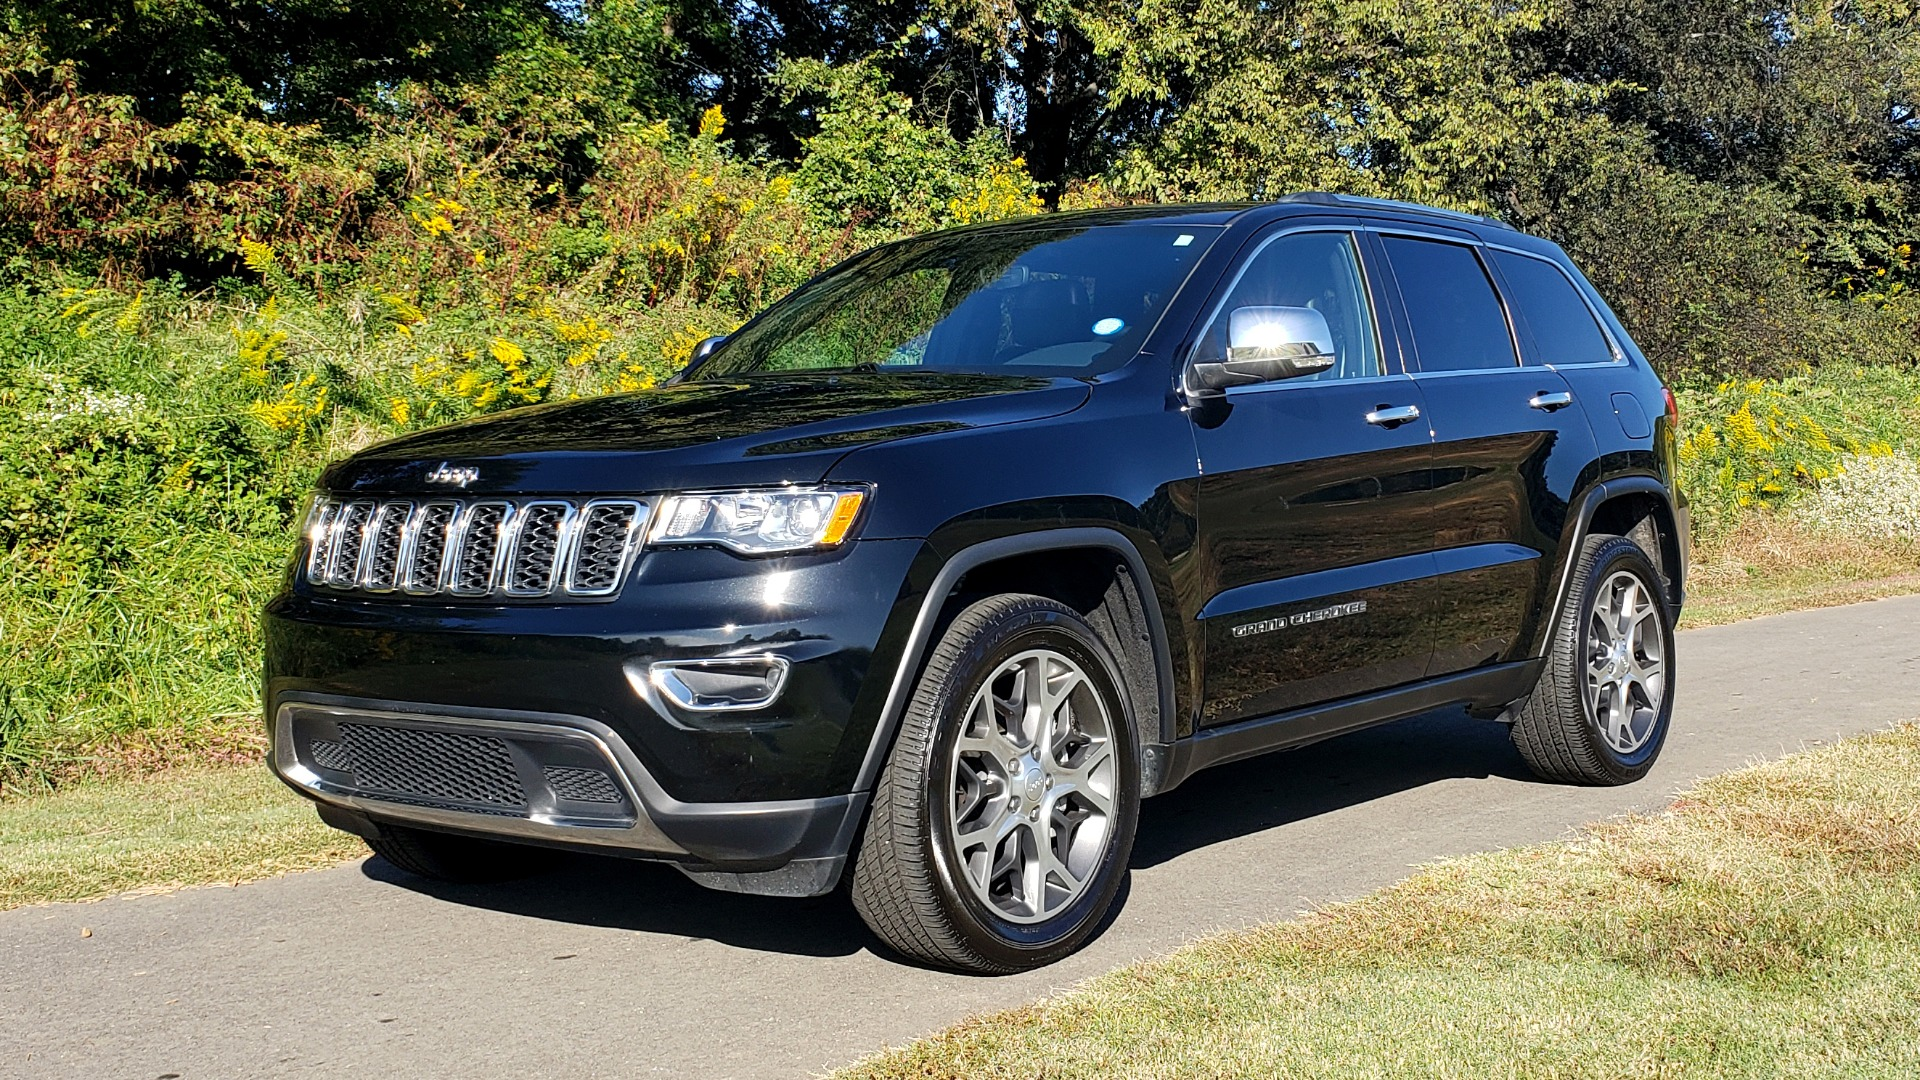 Used 2019 Jeep GRAND CHEROKEE LIMITED 4X4 / NAV / SUNROOF / BLIND SPOT MONITOR / REARVIEW for sale Sold at Formula Imports in Charlotte NC 28227 6